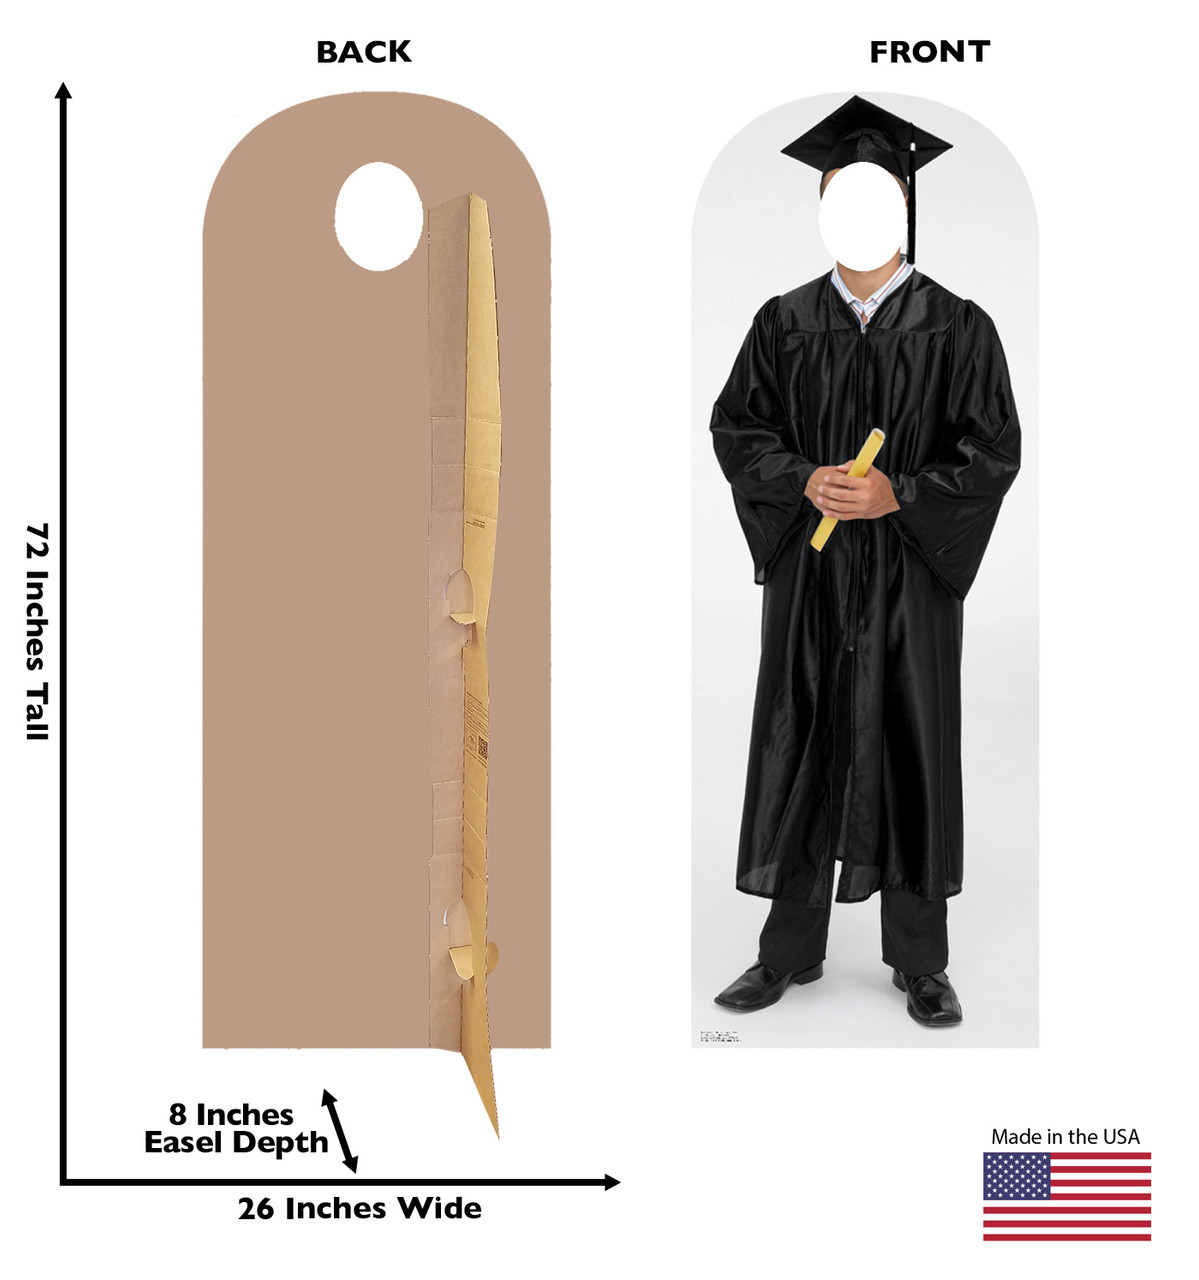 Life-size cardboard standin of graduate with back and front dimensions.